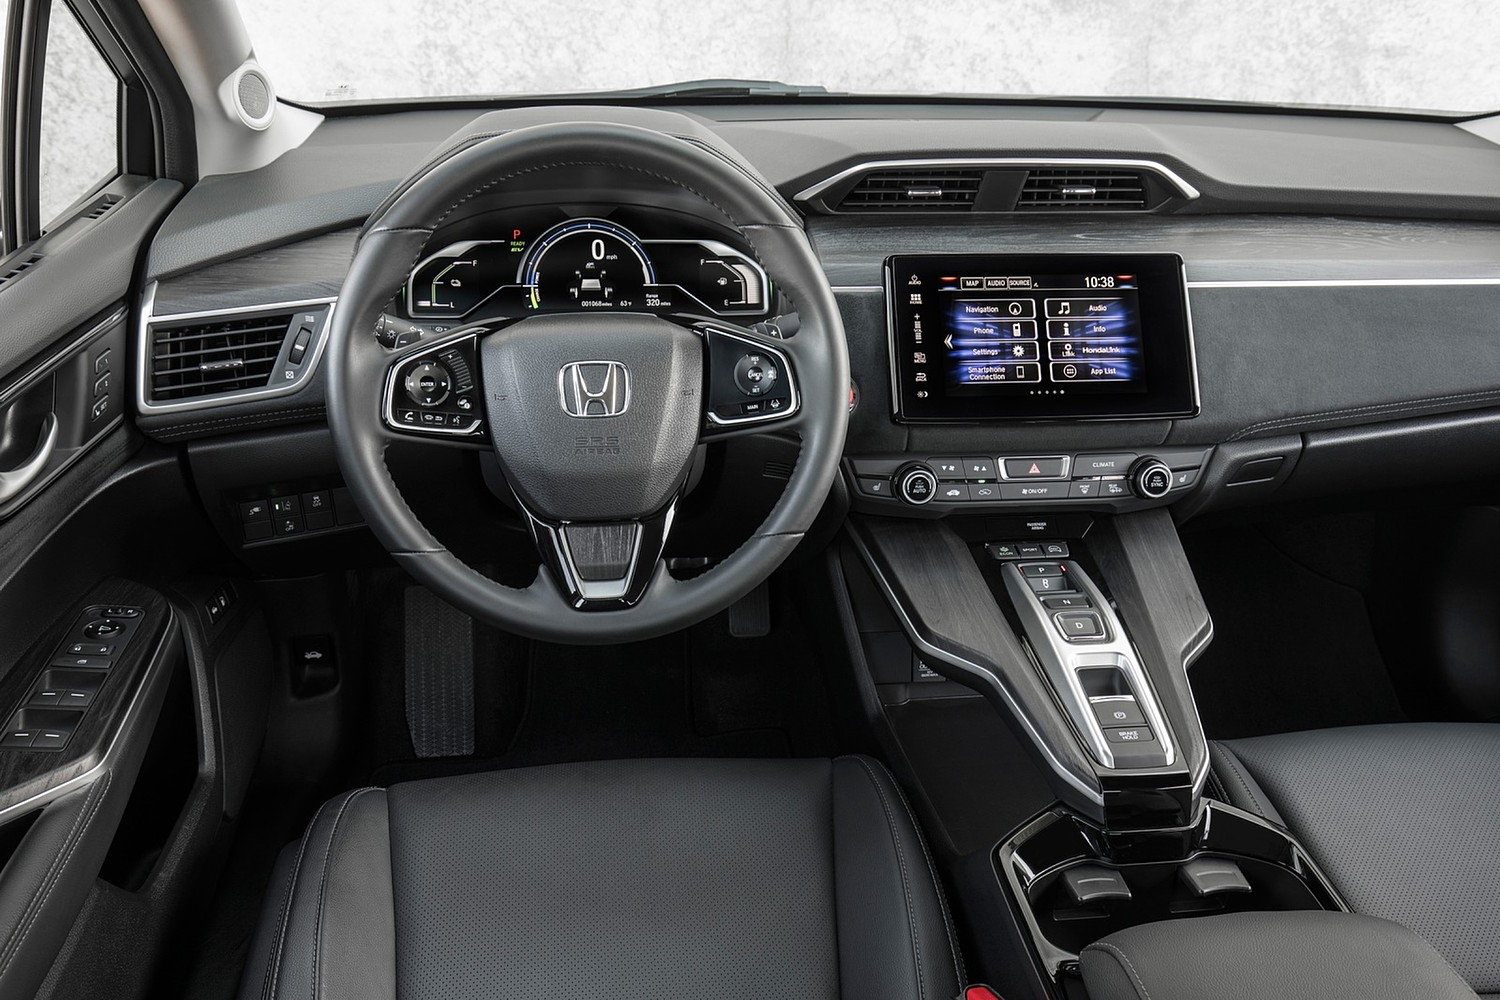 2018 Honda Clarity Touring Plug-In Hybrid Sedan Steering Wheel Detail